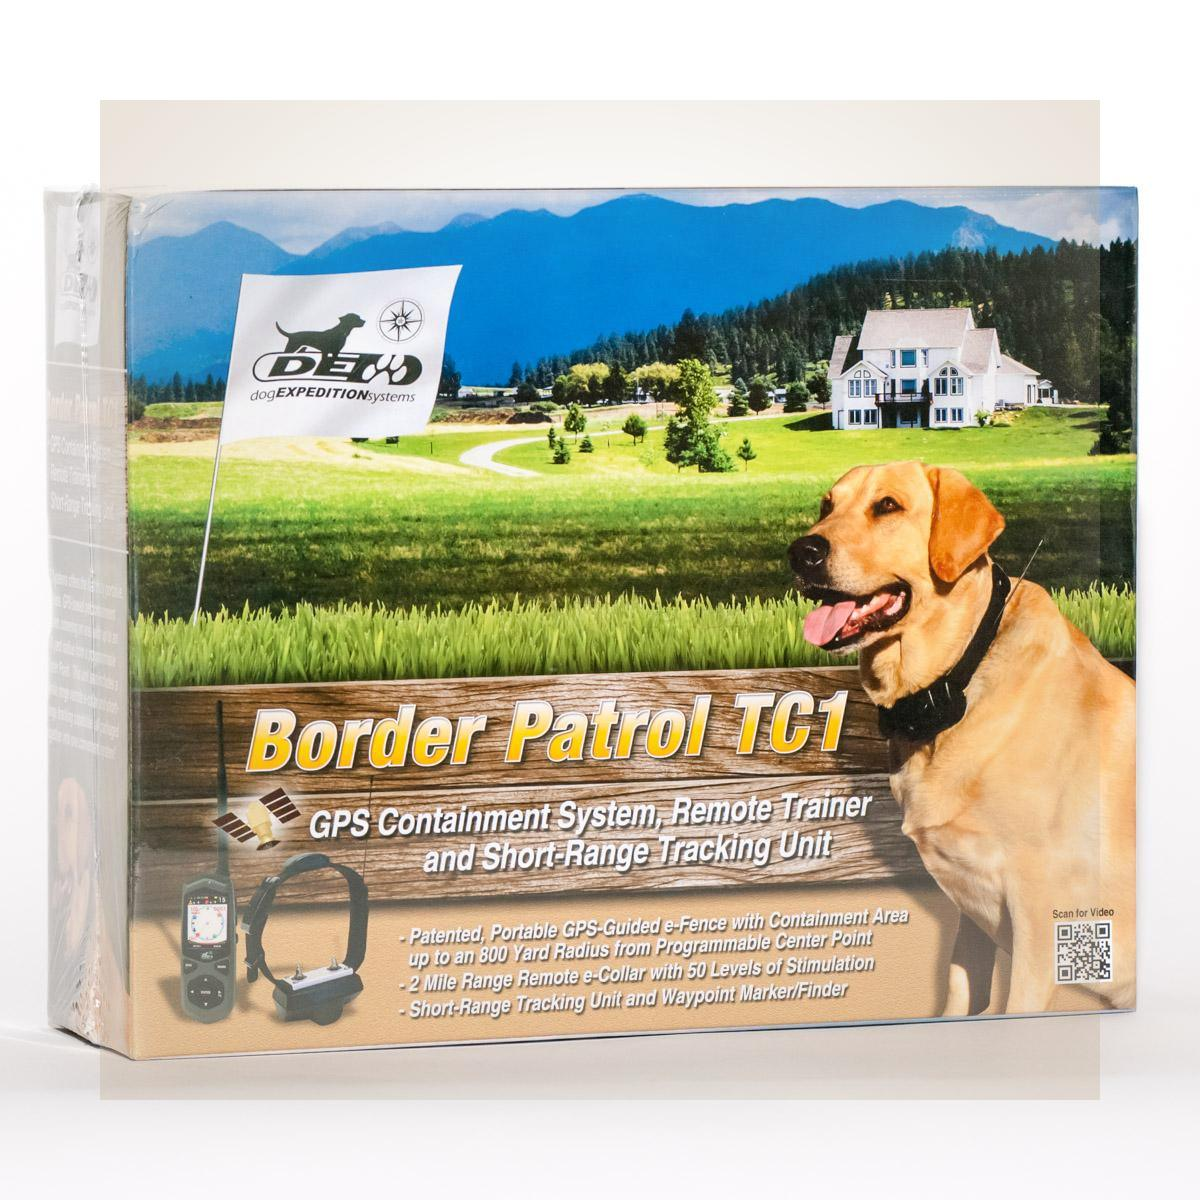 Border Patrol Tc1 Gps Portable Dog Fence Amp Remote Trainer